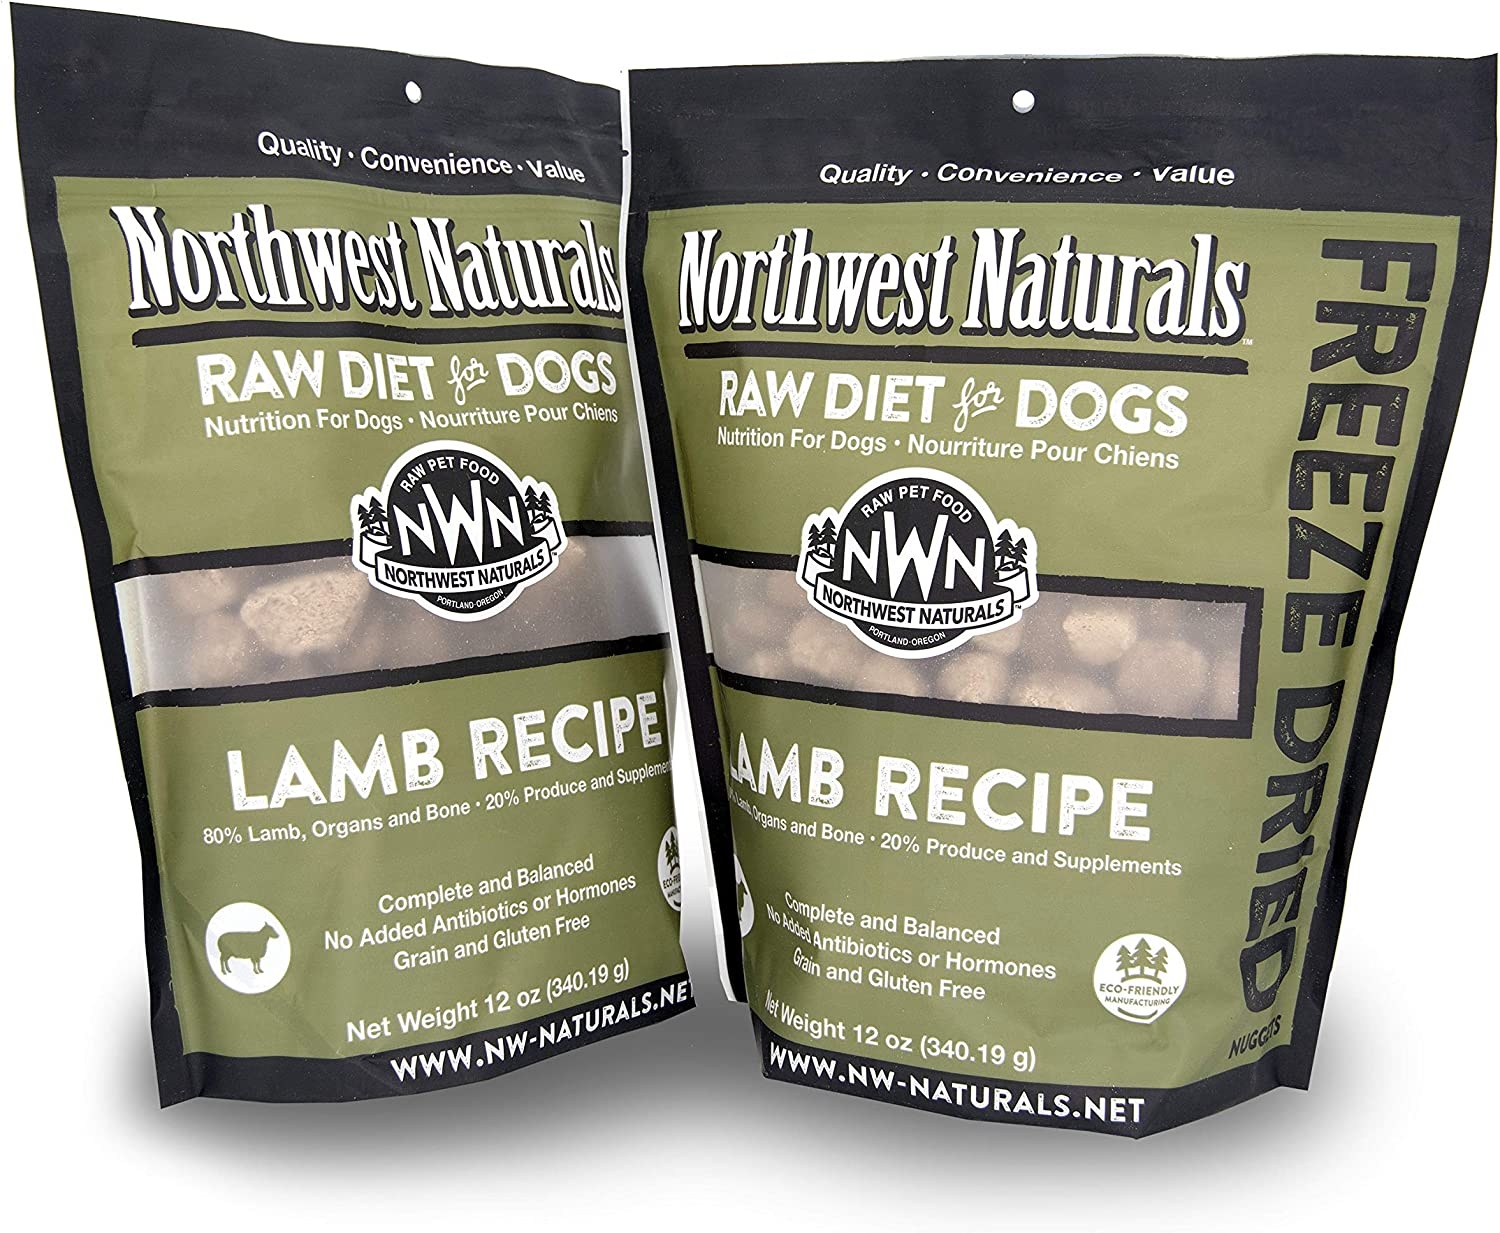 Northwest Naturals Freeze-Dried Raw Food Diet for Dogs, 2-Pack, Lamb Recipe, 12 oz in Each Bag, Made in Portland Oregon, USA, Complete and Balanced